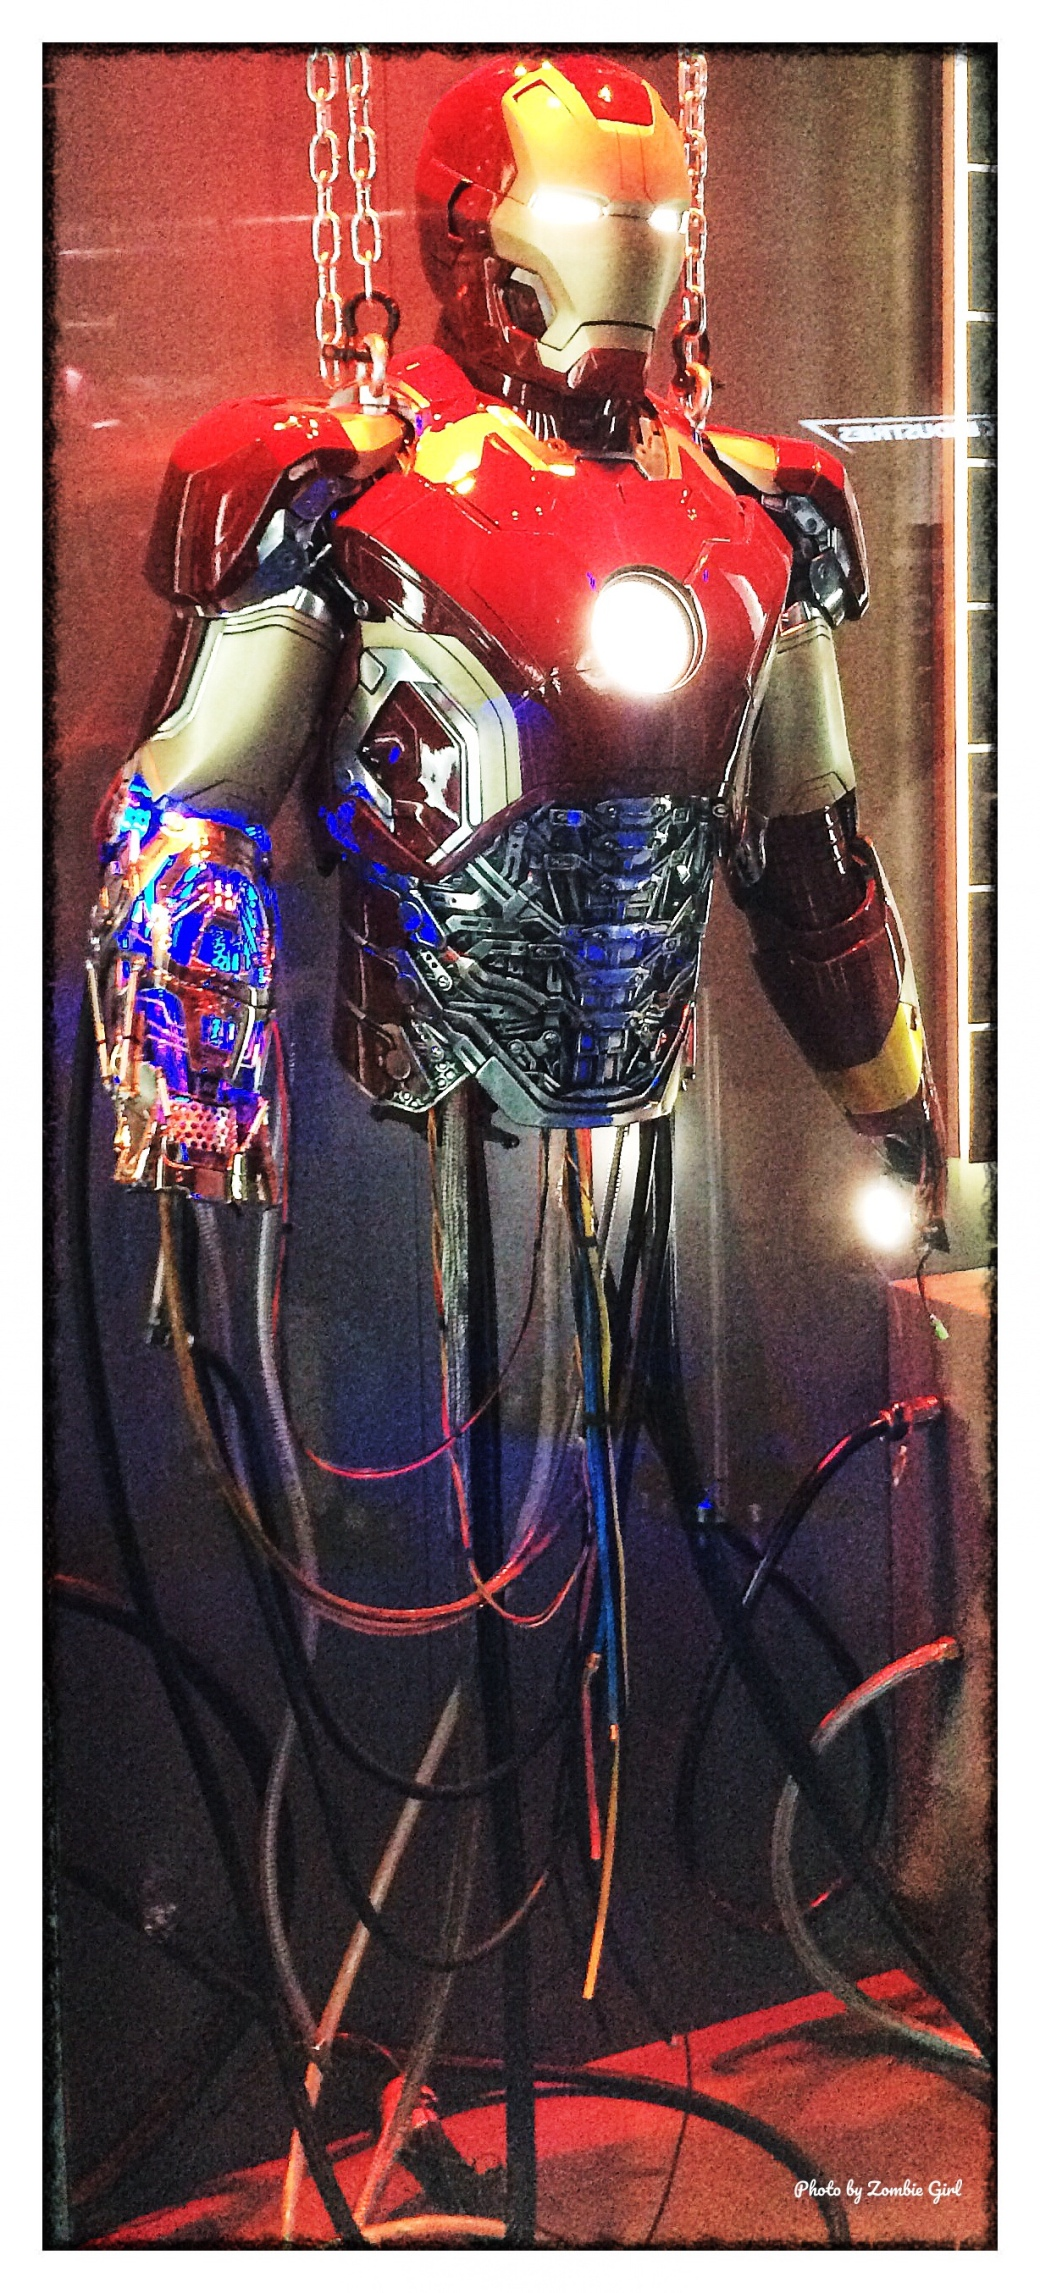 Iron Man's suit, as used on the film sets.